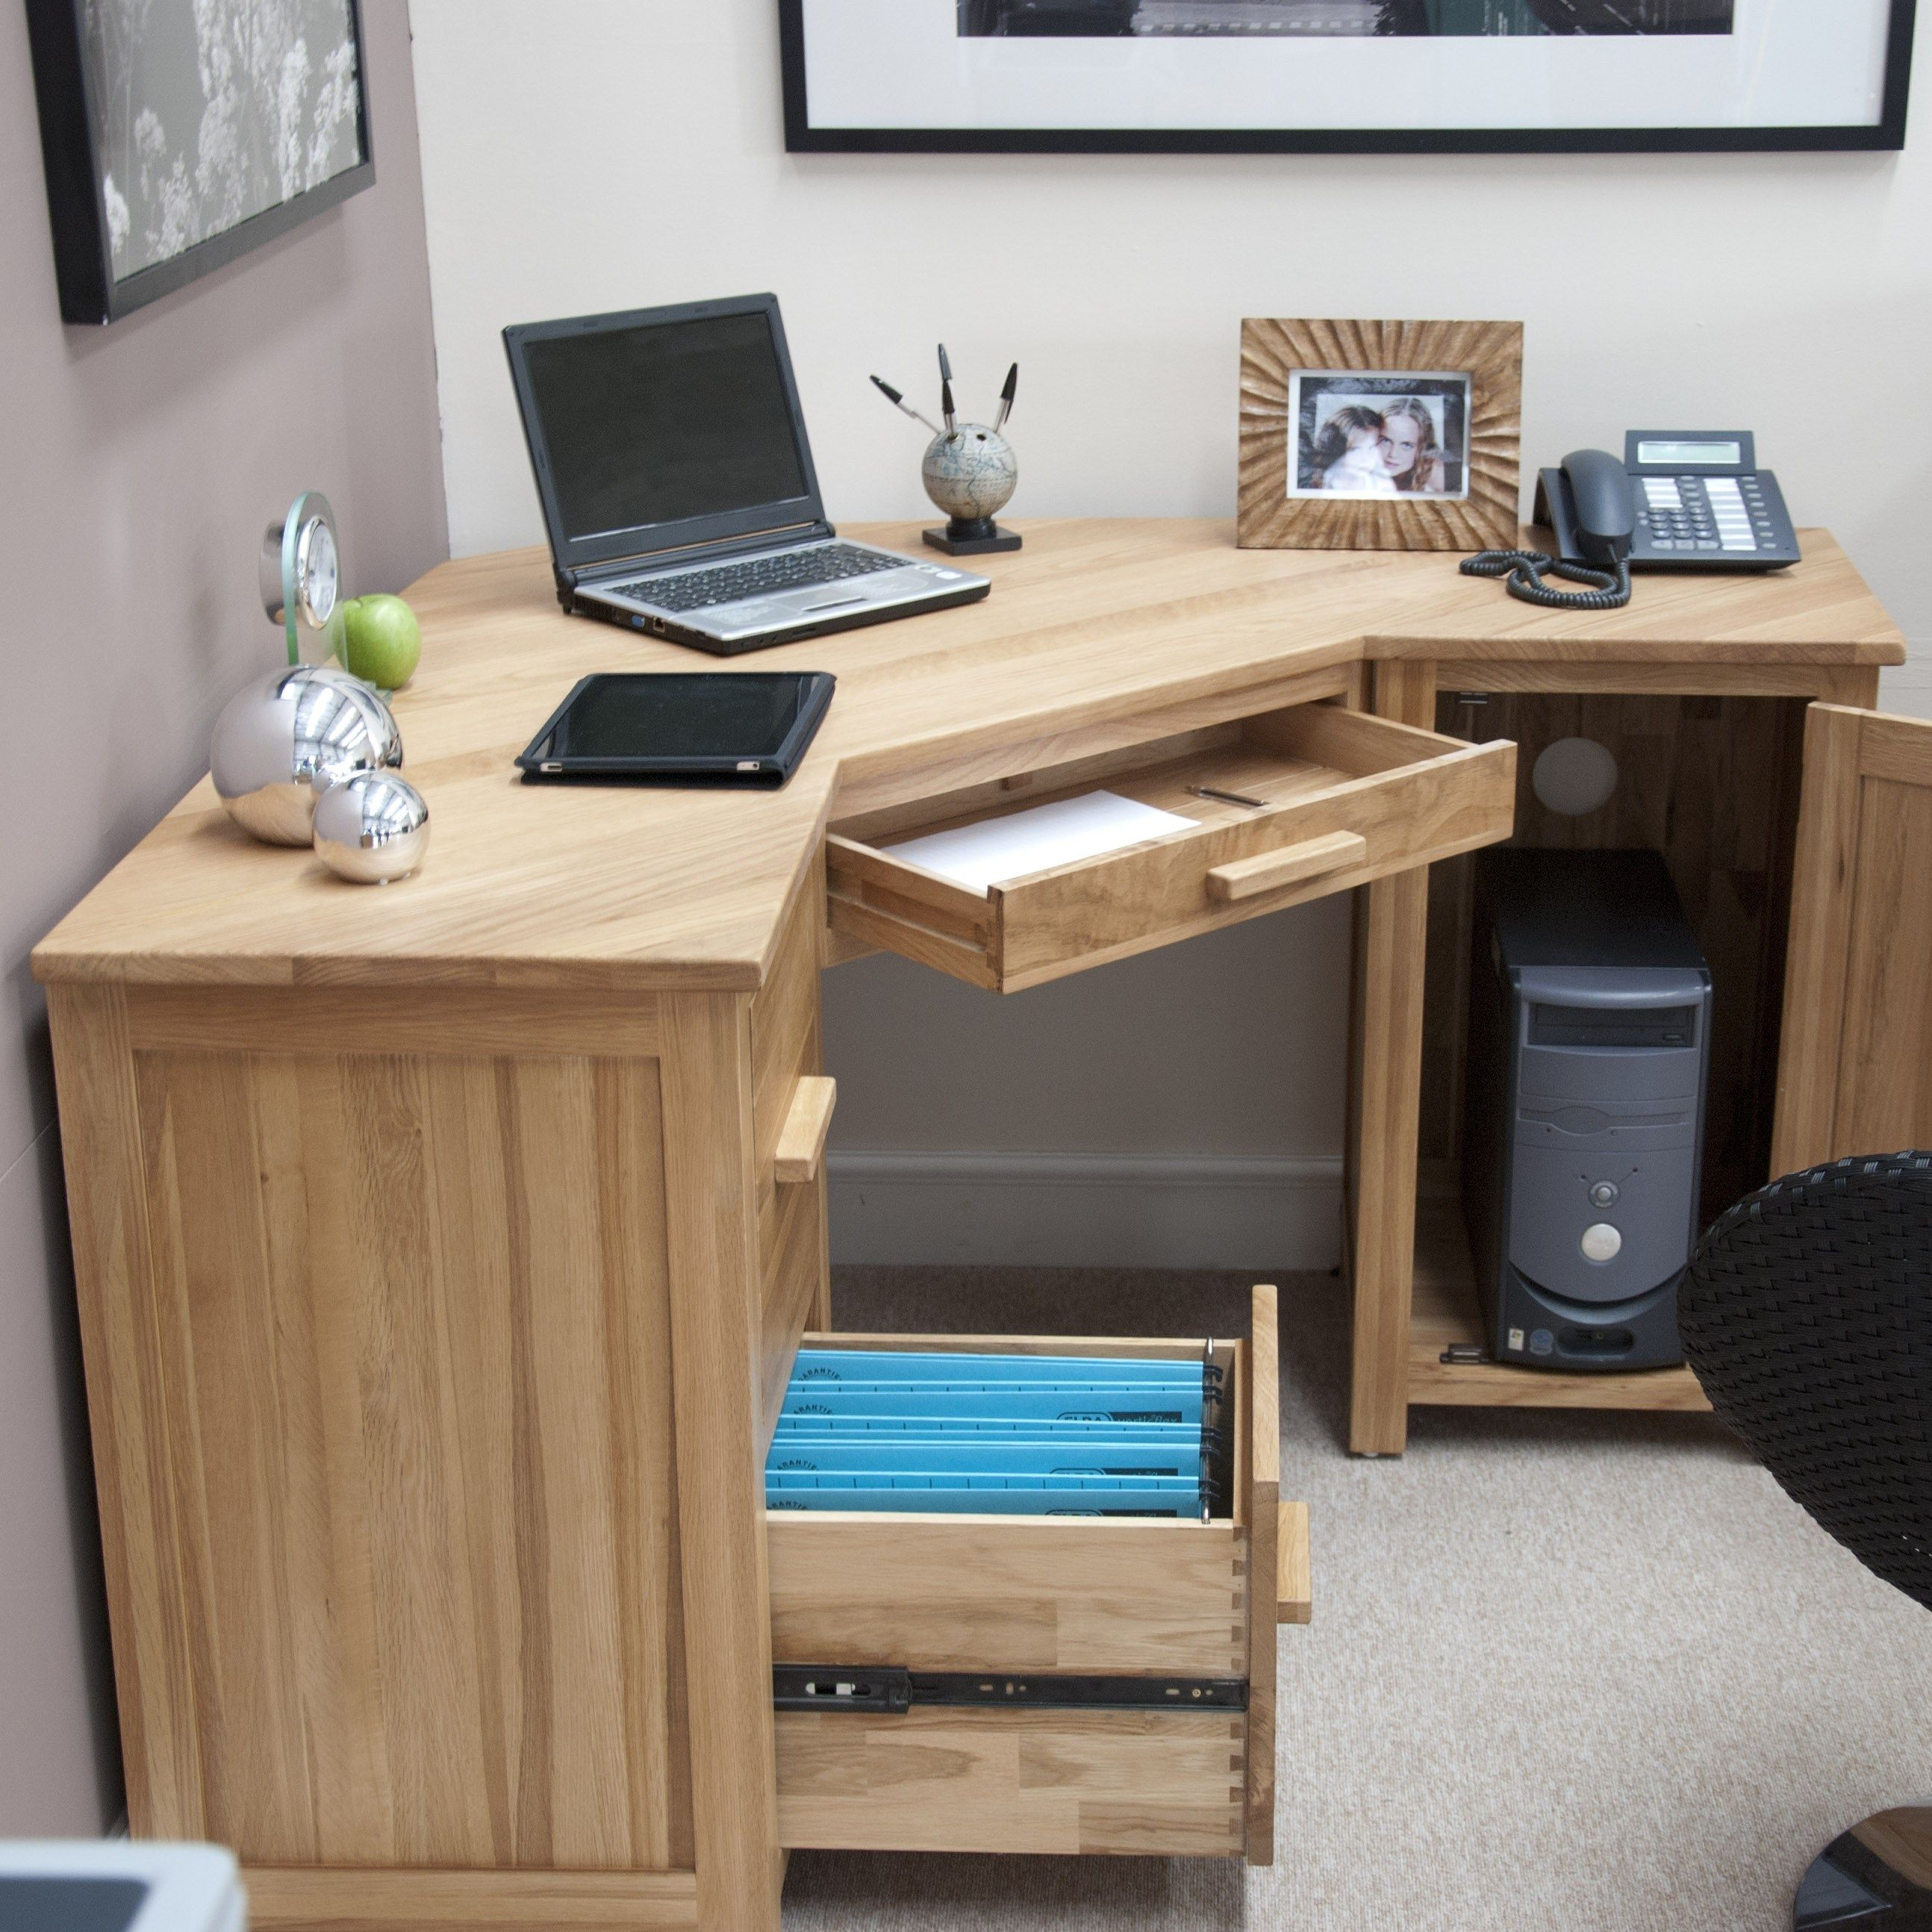 browse looking for executive office selection large quality desks luxury functional re of are desk if practical while used and a our high you furniture